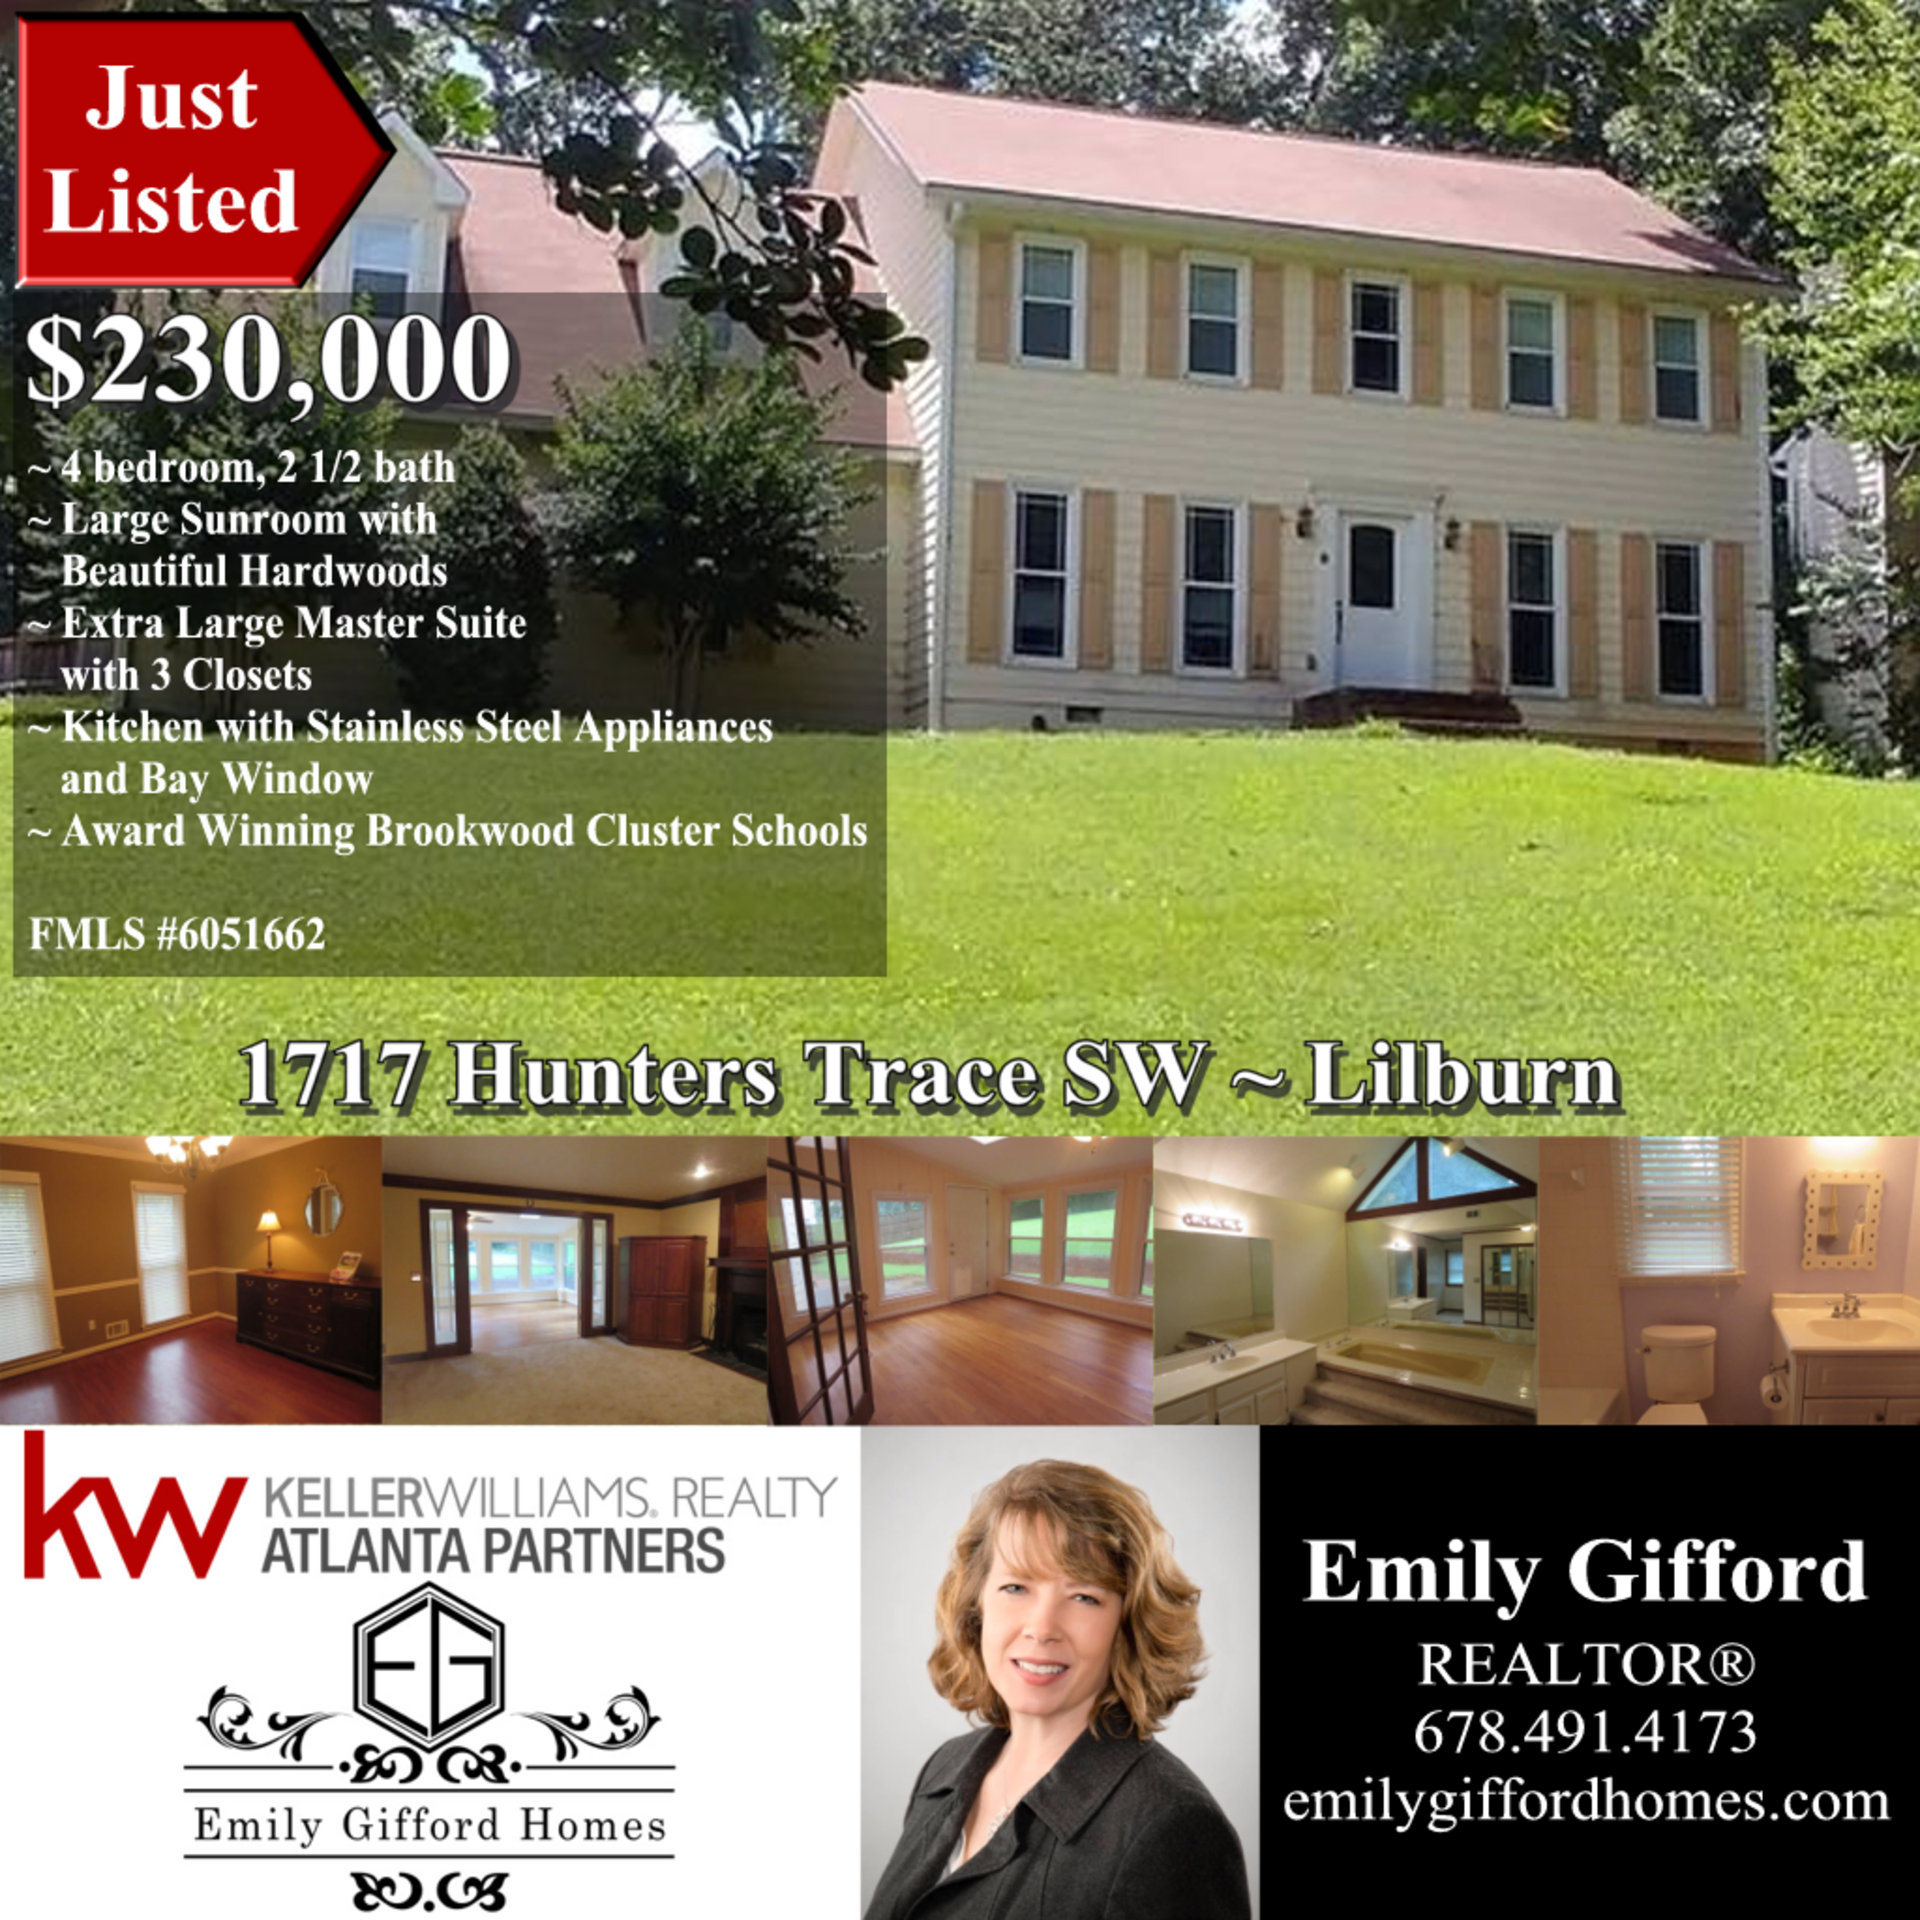 Just Listed in Lilburn